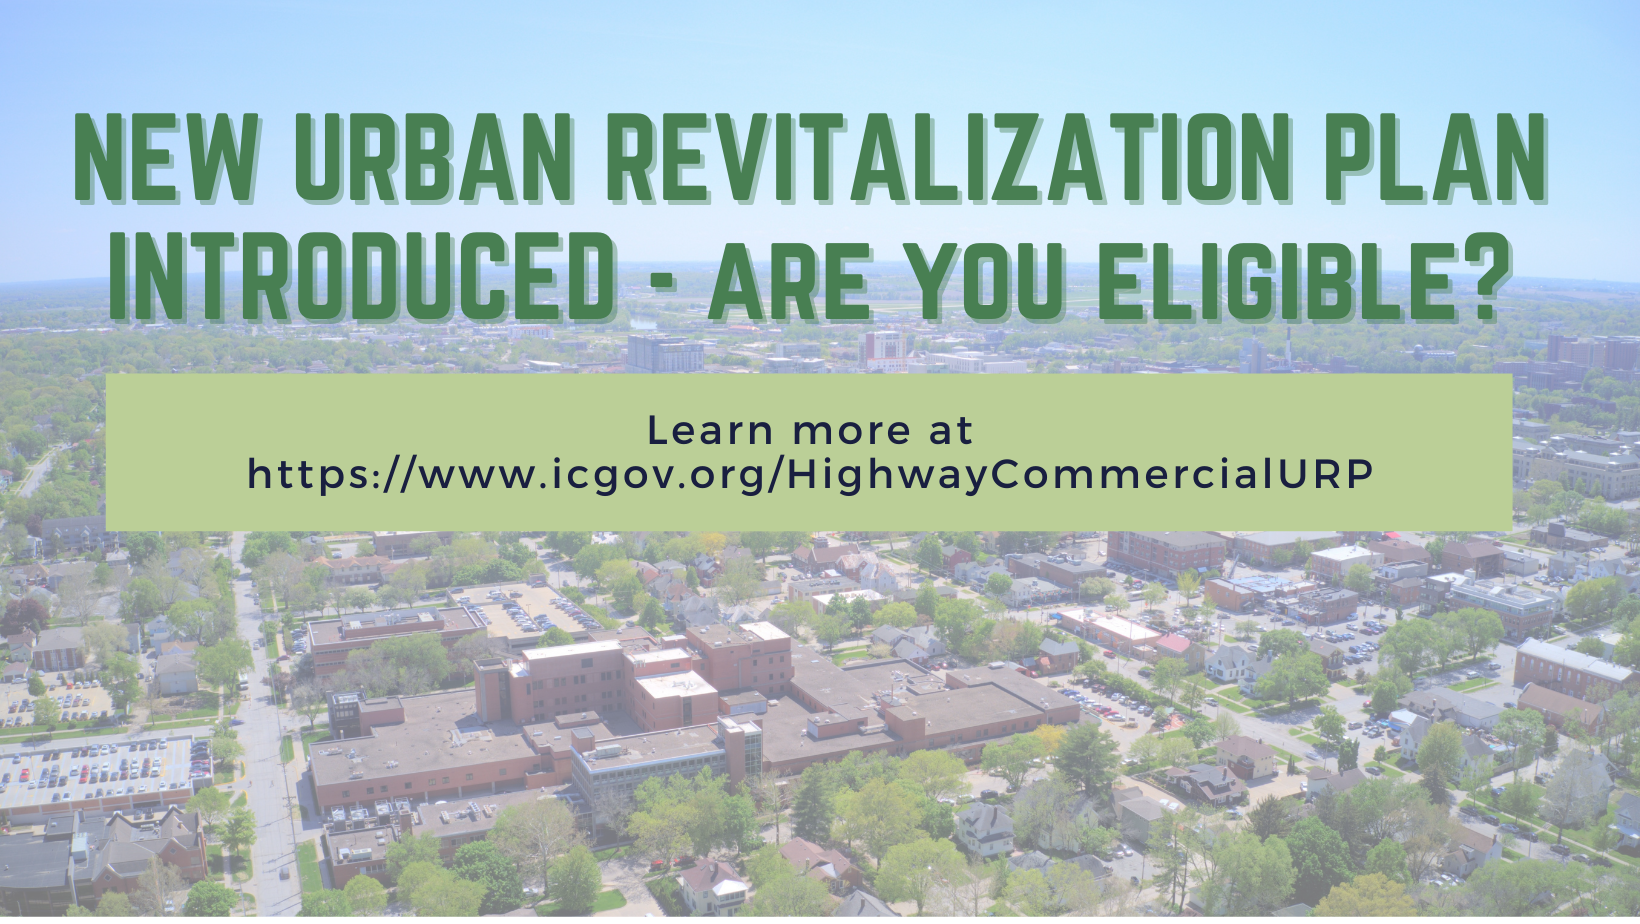 A graphic promoting the new urban revitalization plan.